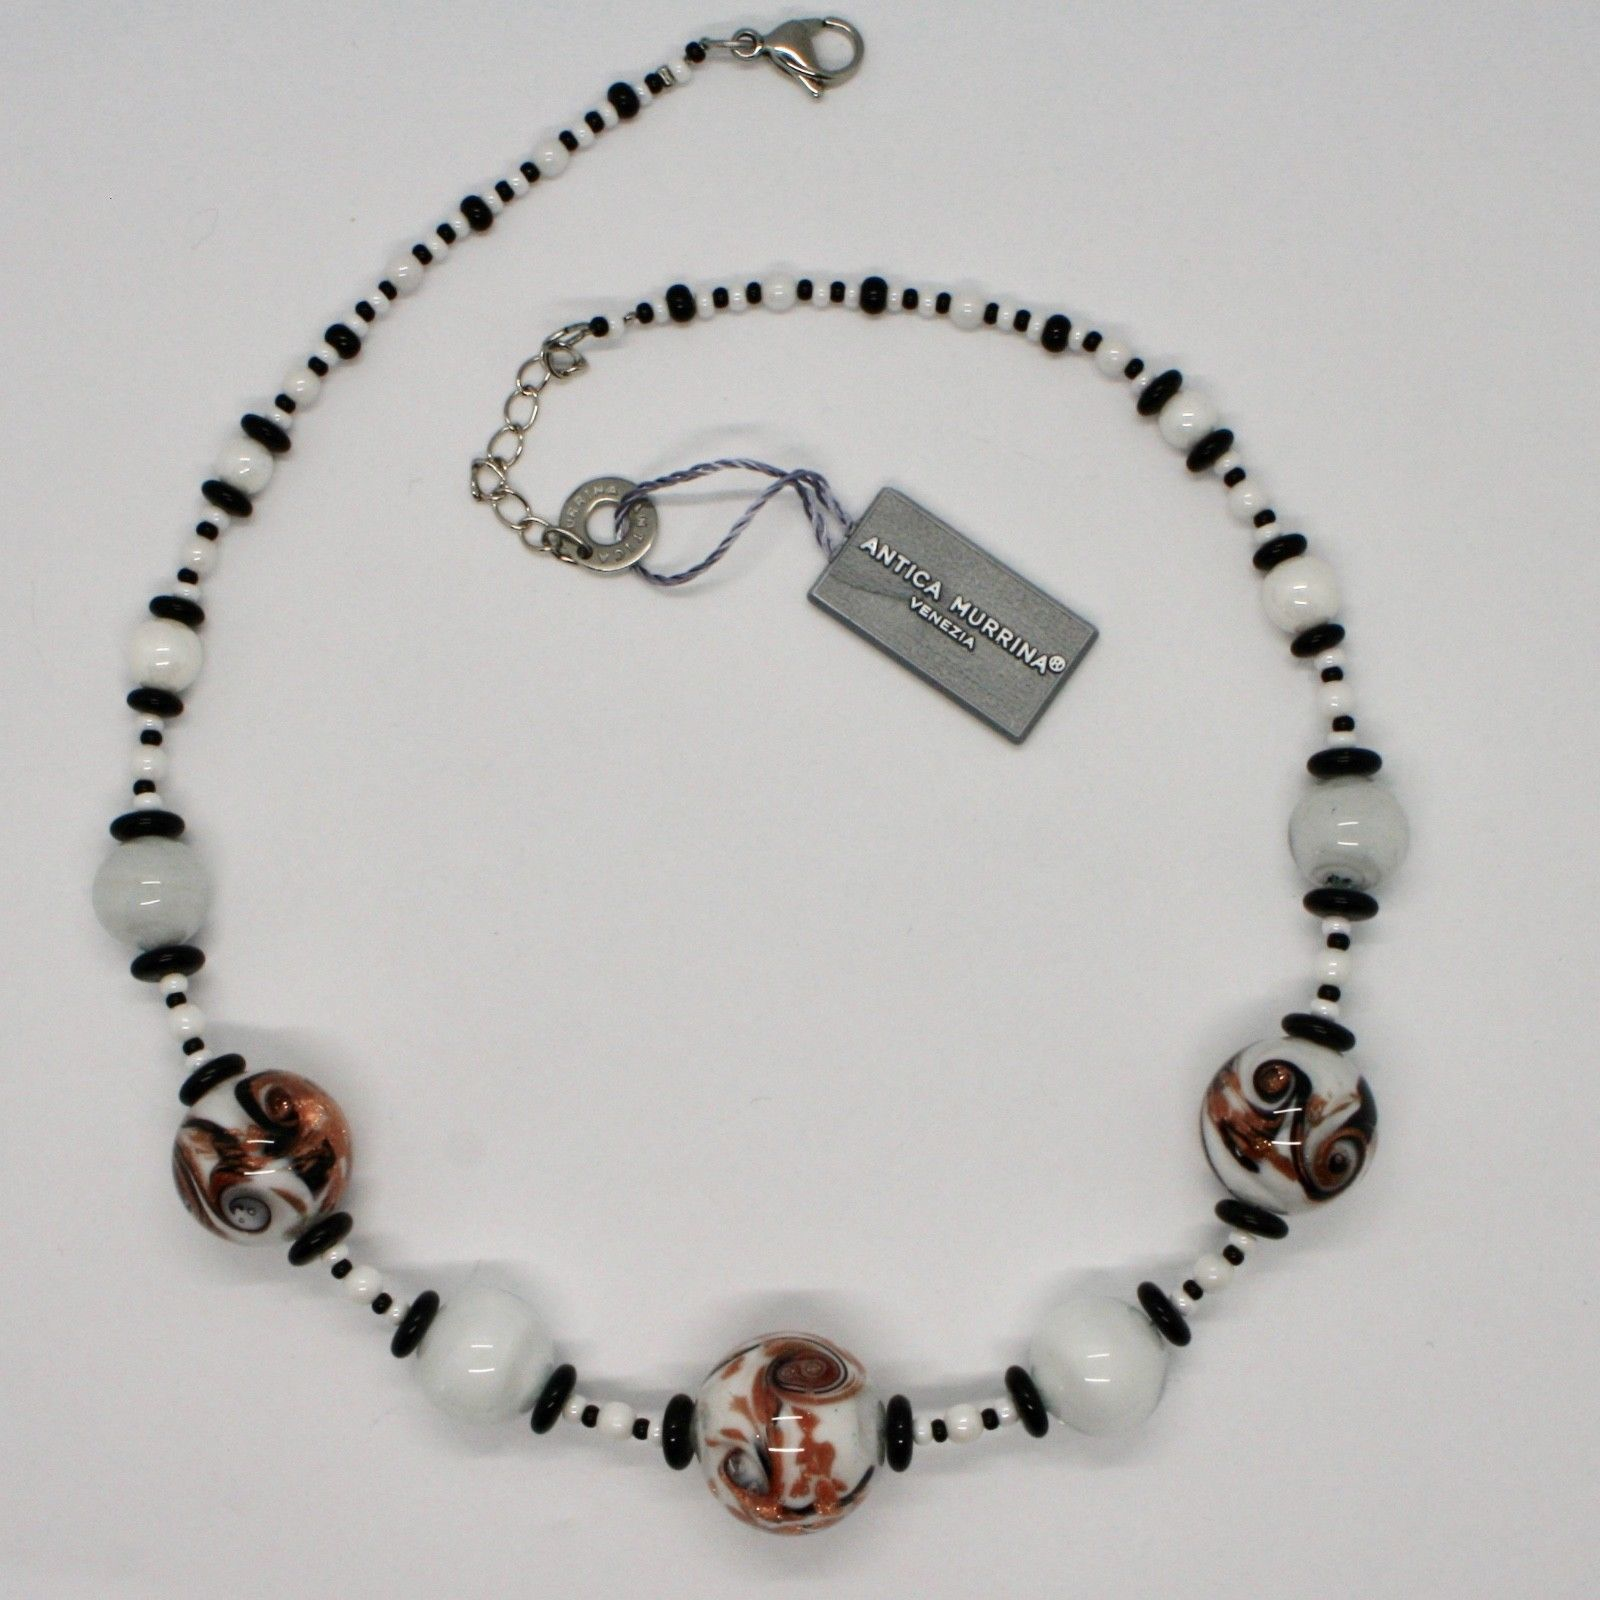 ANTICA MURRINA VENEZIA NECKLACE WITH MURANO GLASS WHITE BEIGE BLACK COA89A15